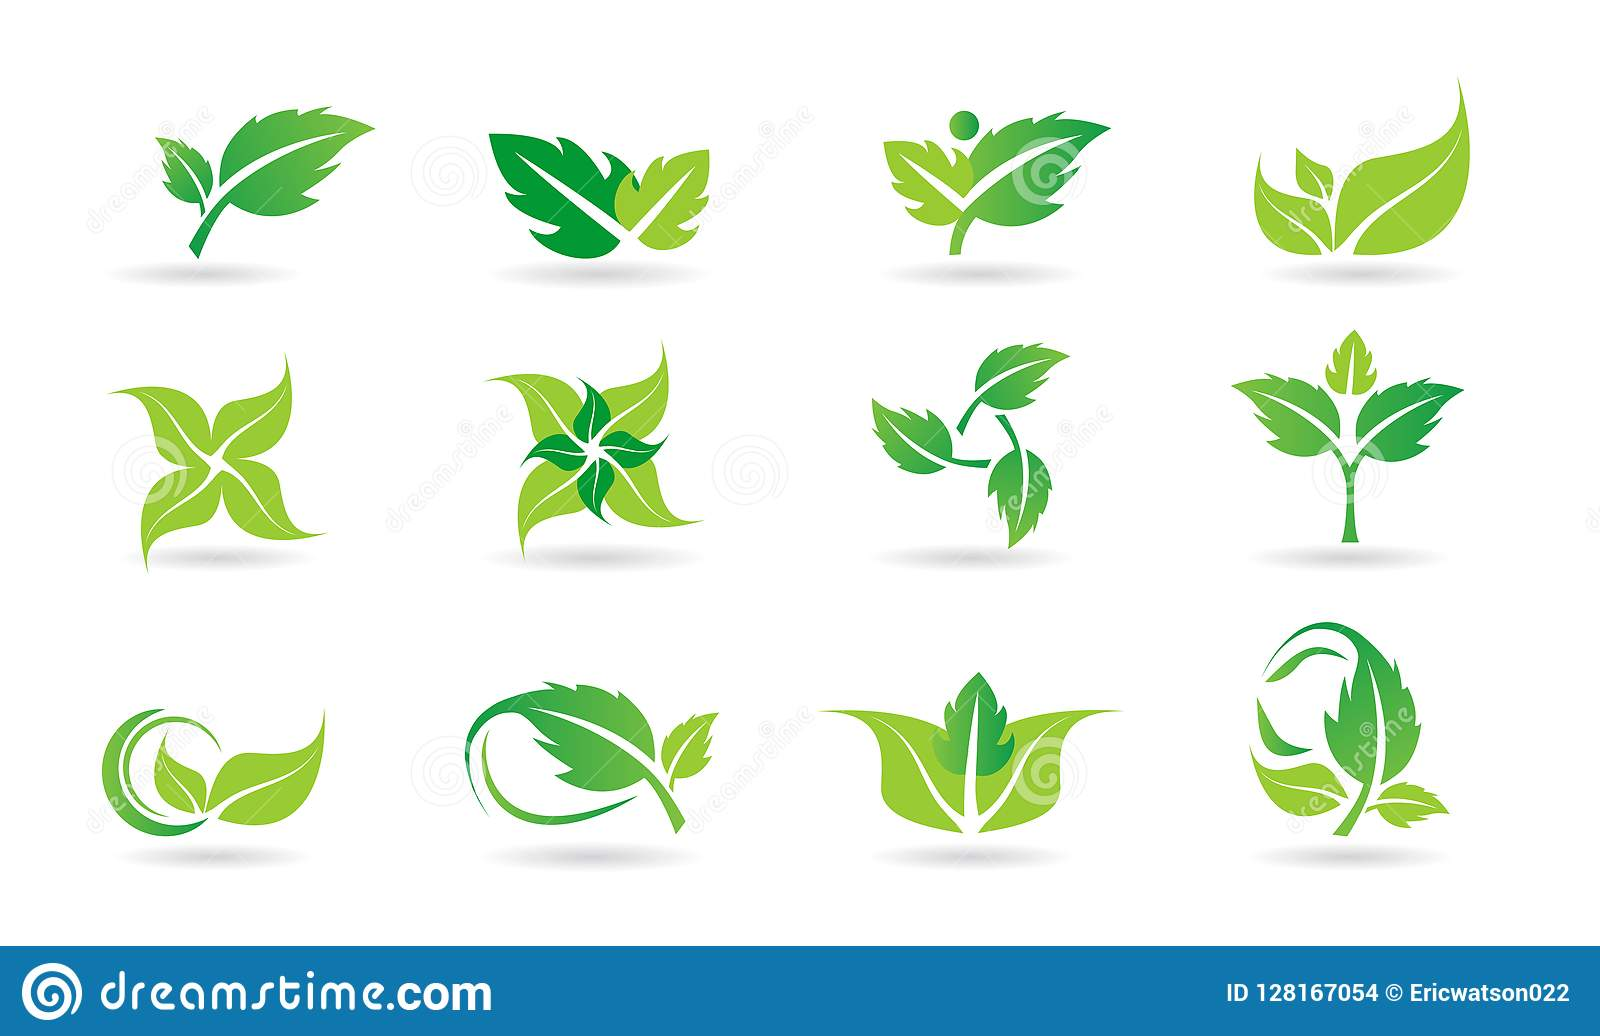 Leaf, logo, plant, ecology, people, wellness, green, leaves, nature symbol icon set of vector icon set